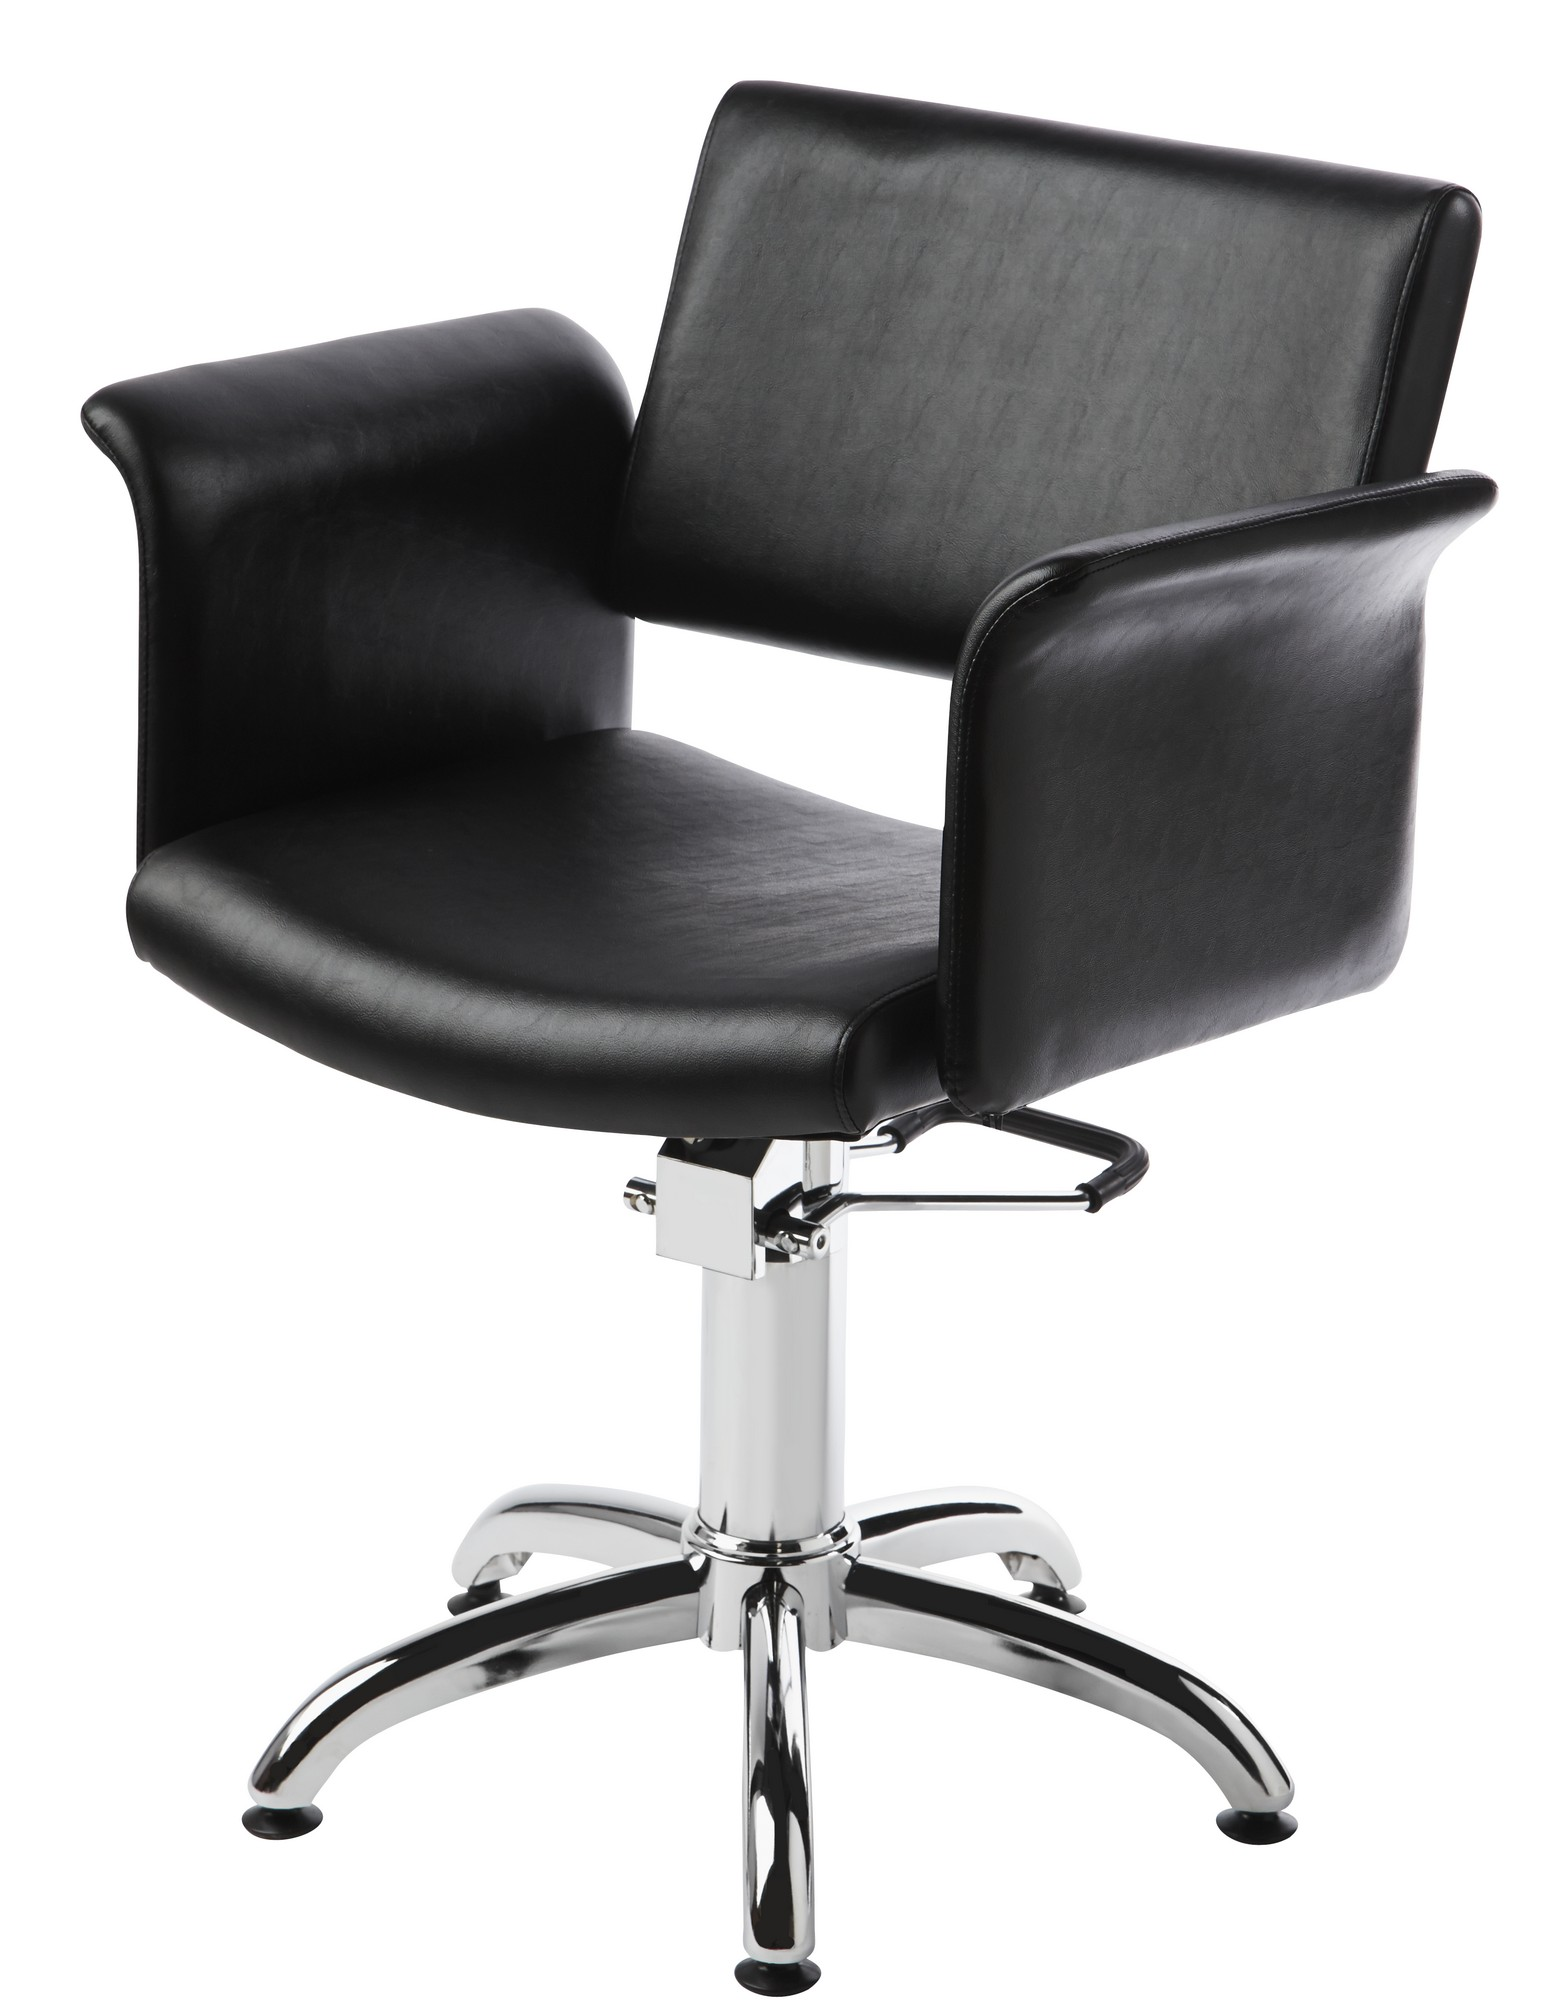 Modern Salon Chairs Joy Studio Design Gallery Best Design